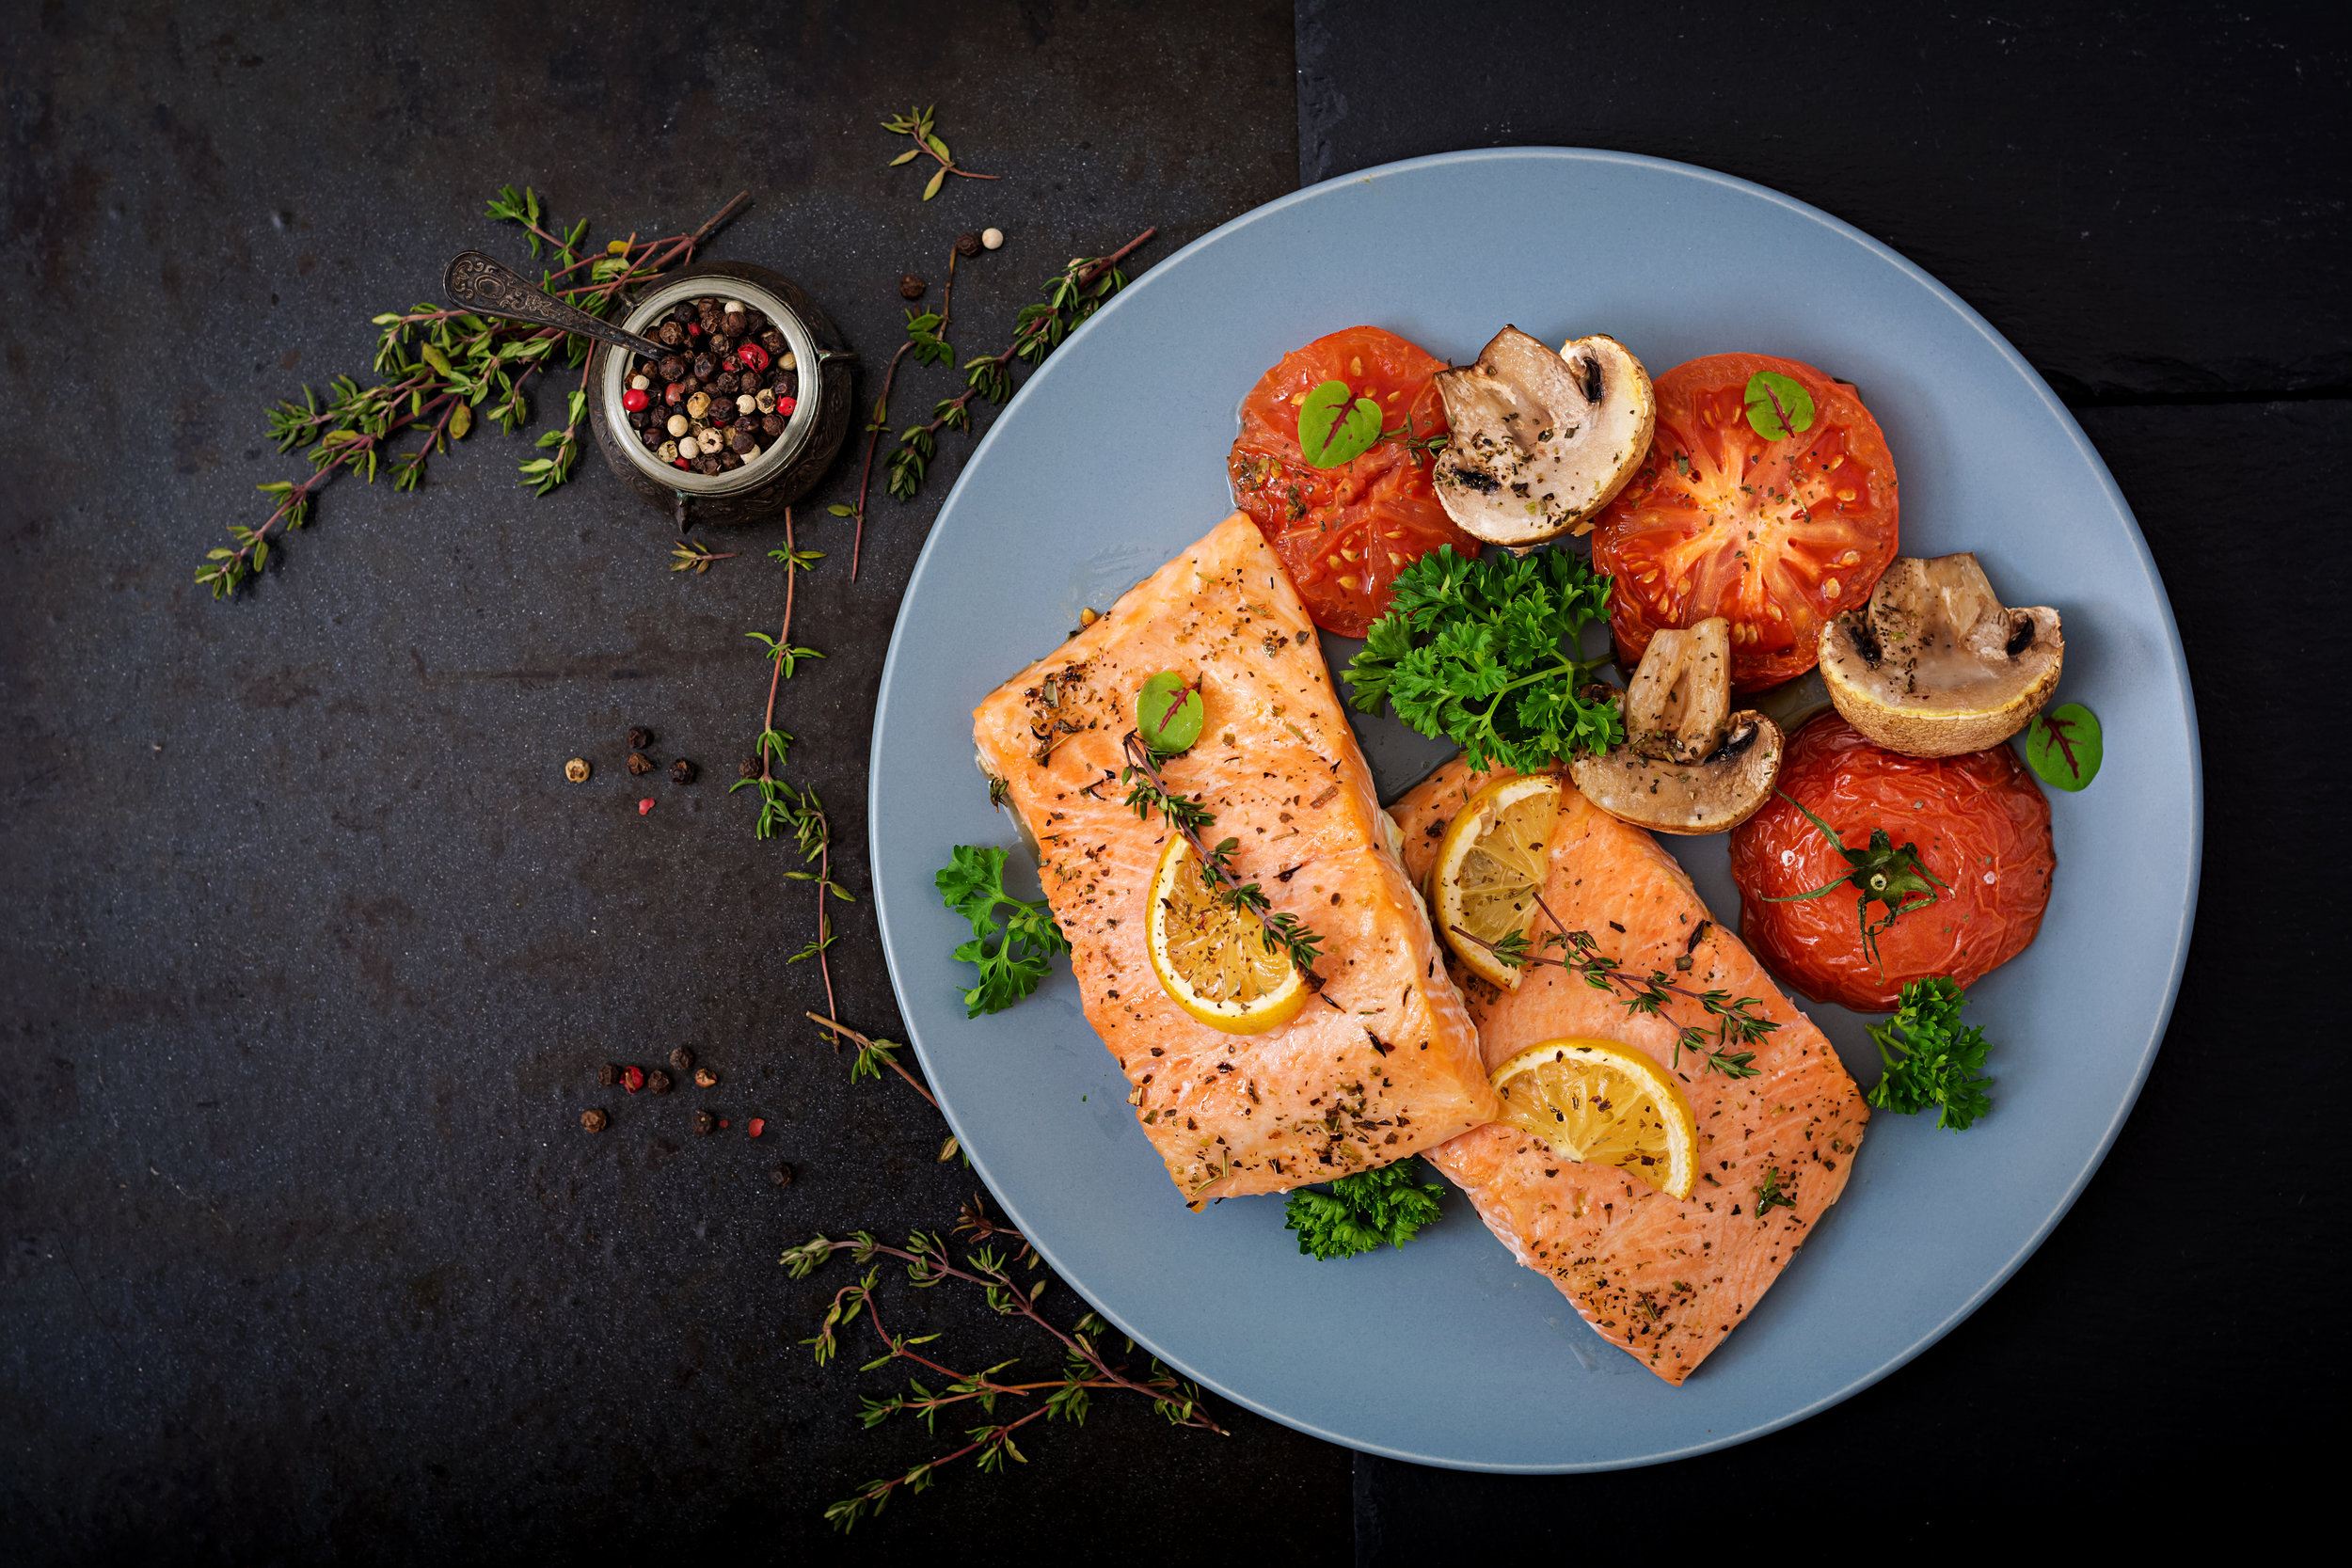 baked-salmon-fish-fillet-with-tomatoes-mushrooms-P6ZYFAW.jpg